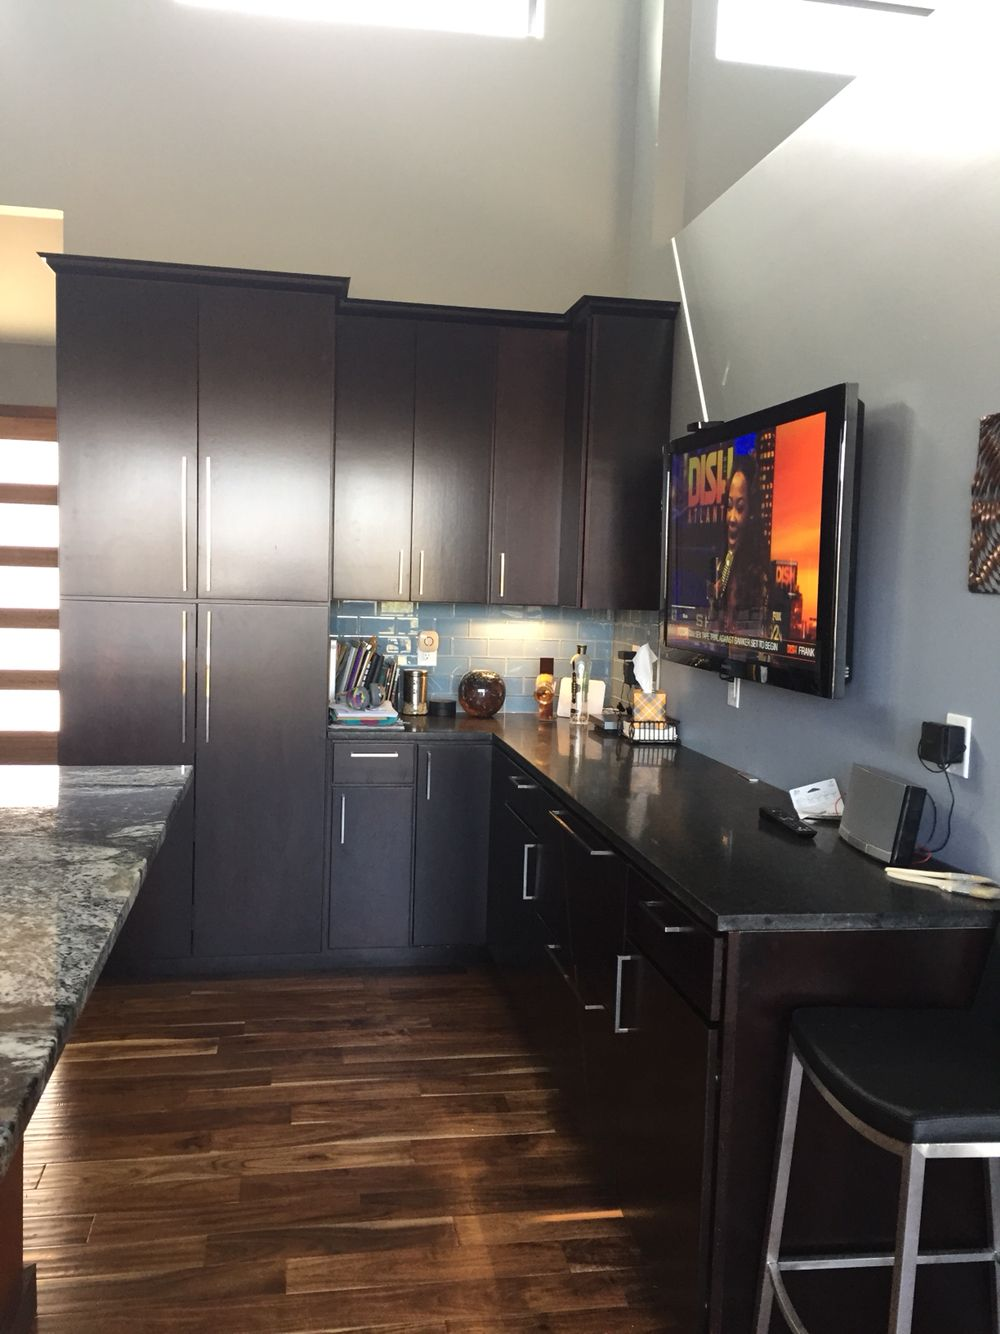 Kabinart Cabinets With Black Pearl Granite Kitchen Cabinets Cabinet Kitchen